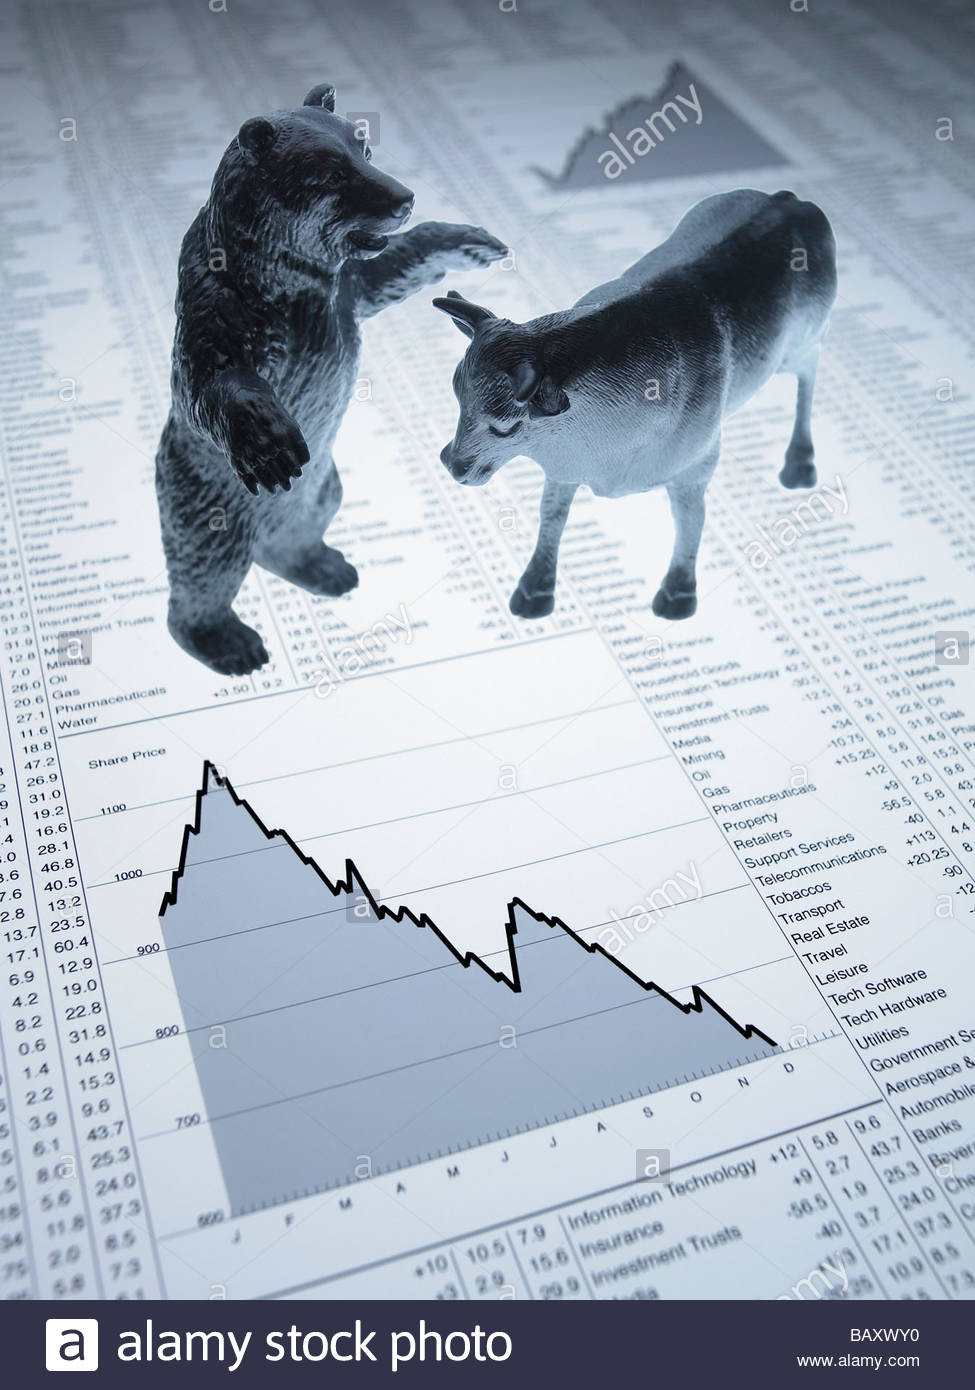 Bull and bear figurines on descending line graph and list of share prices - Stock Image